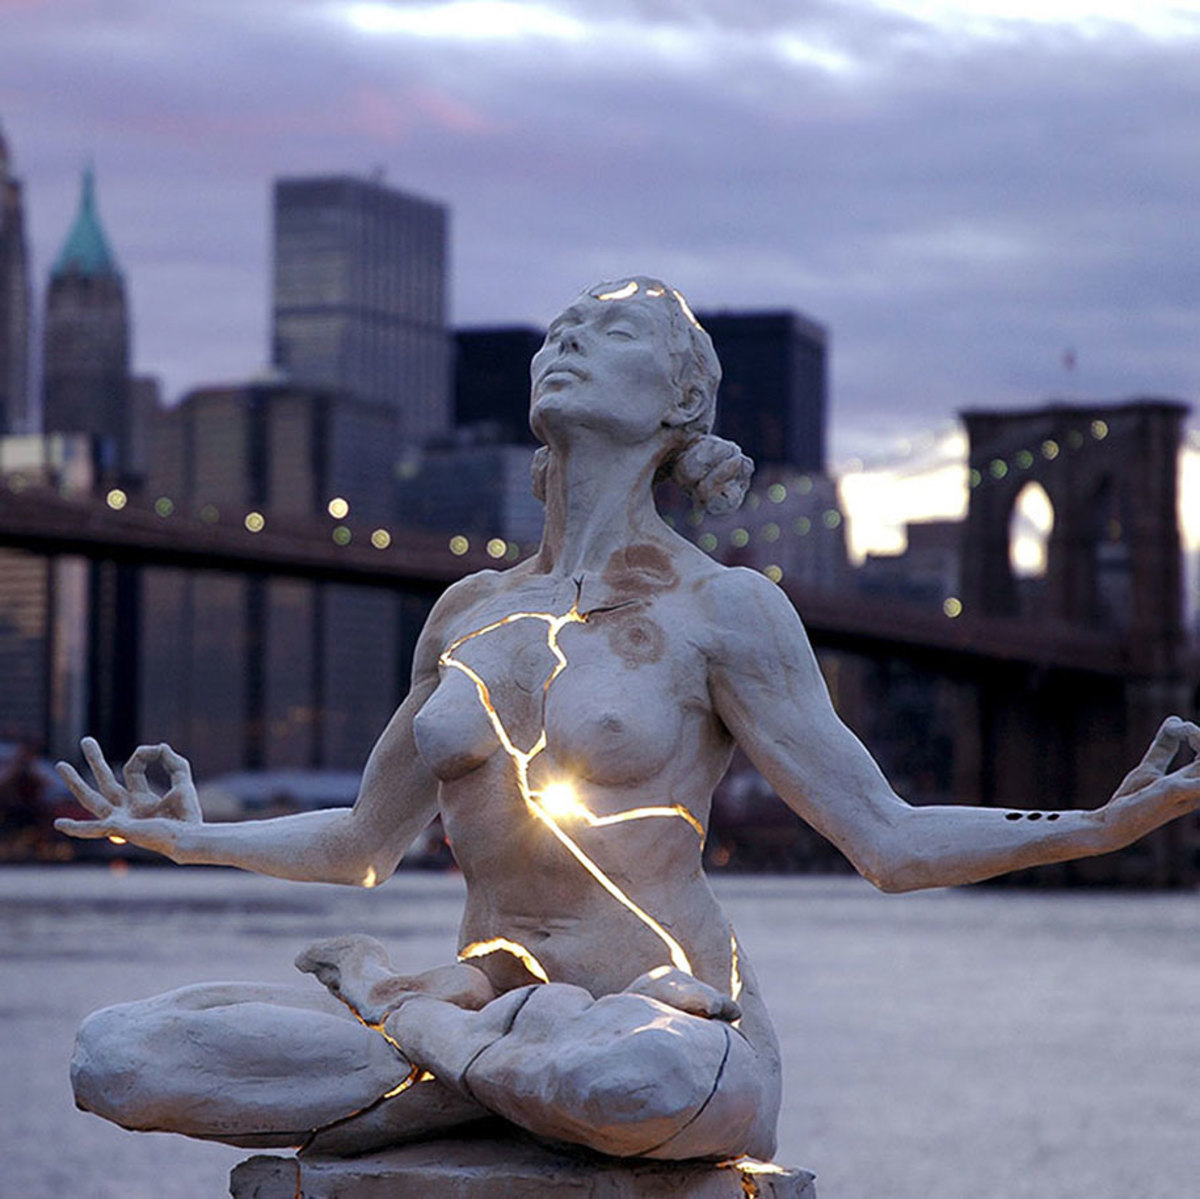 creative-statues-interesting-sculptures-2